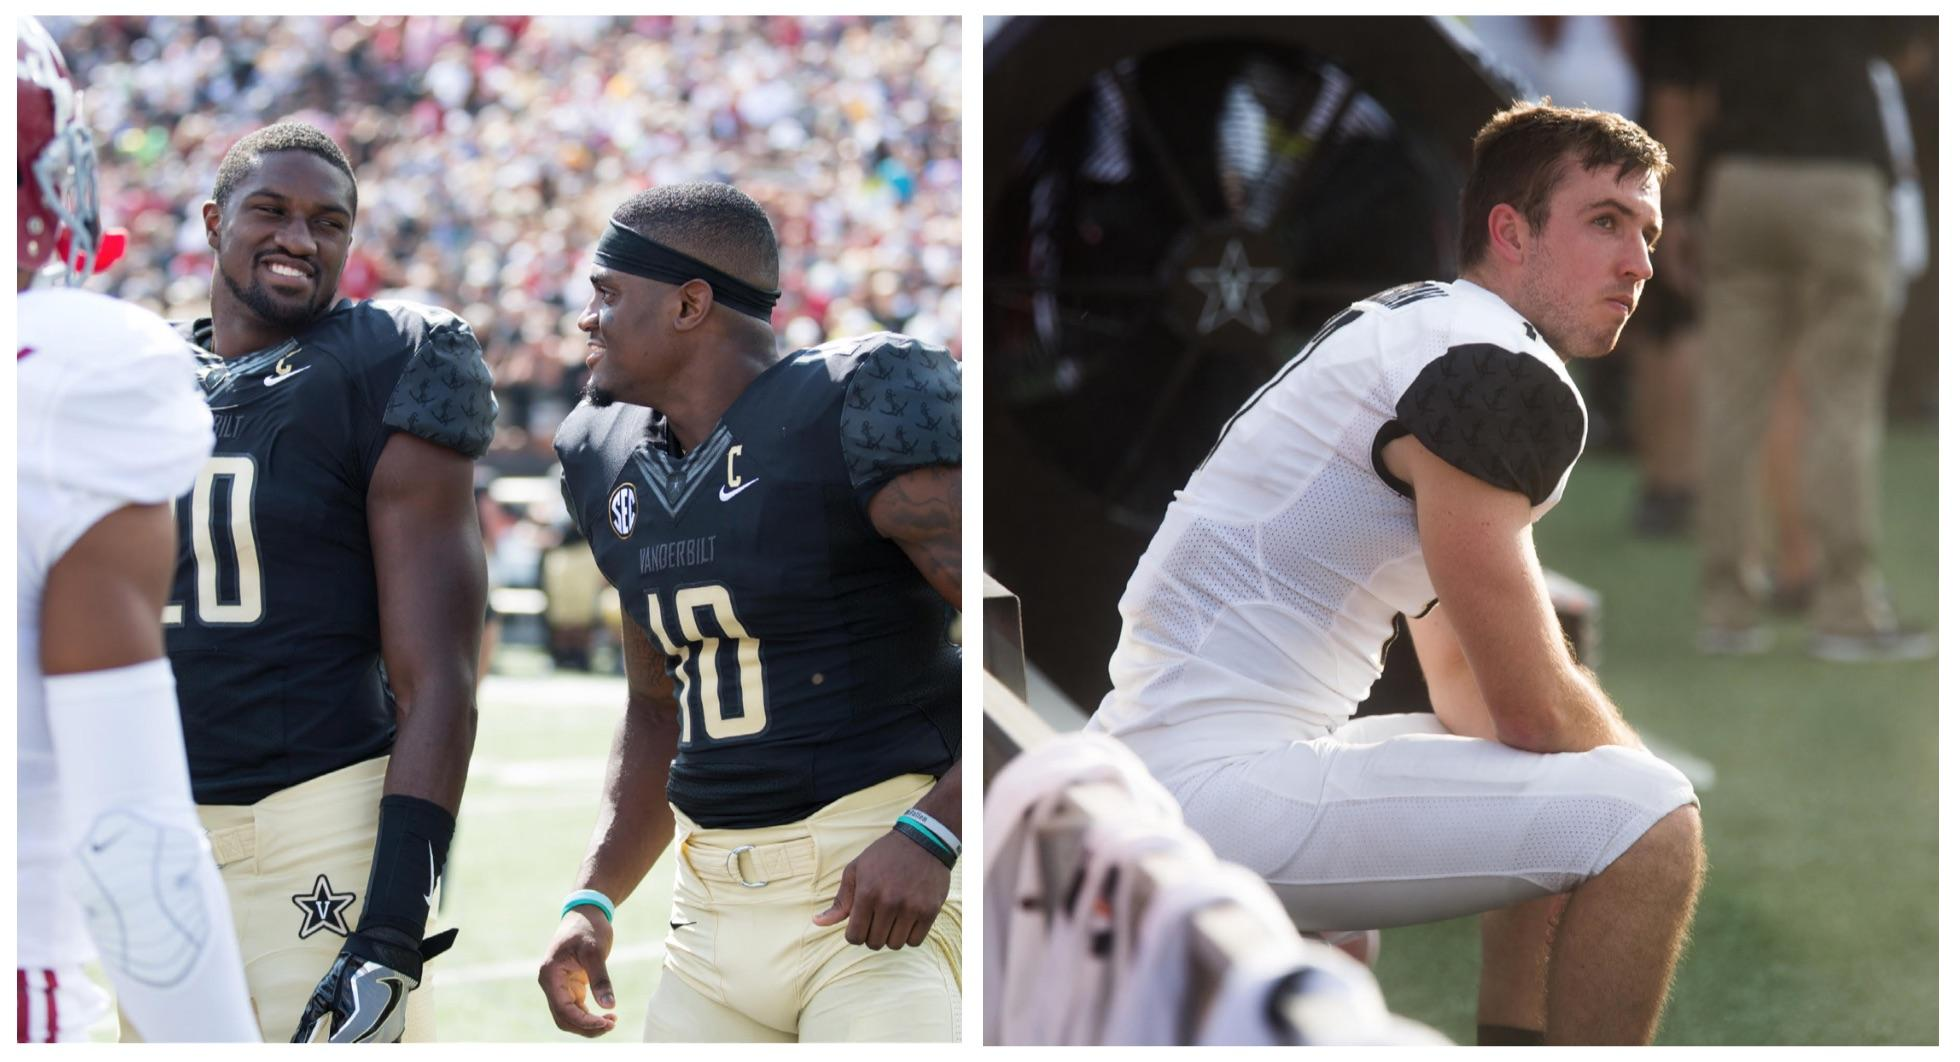 How To Build Vanderbilt Football: Pragmatic solutions from two Commodore alumni